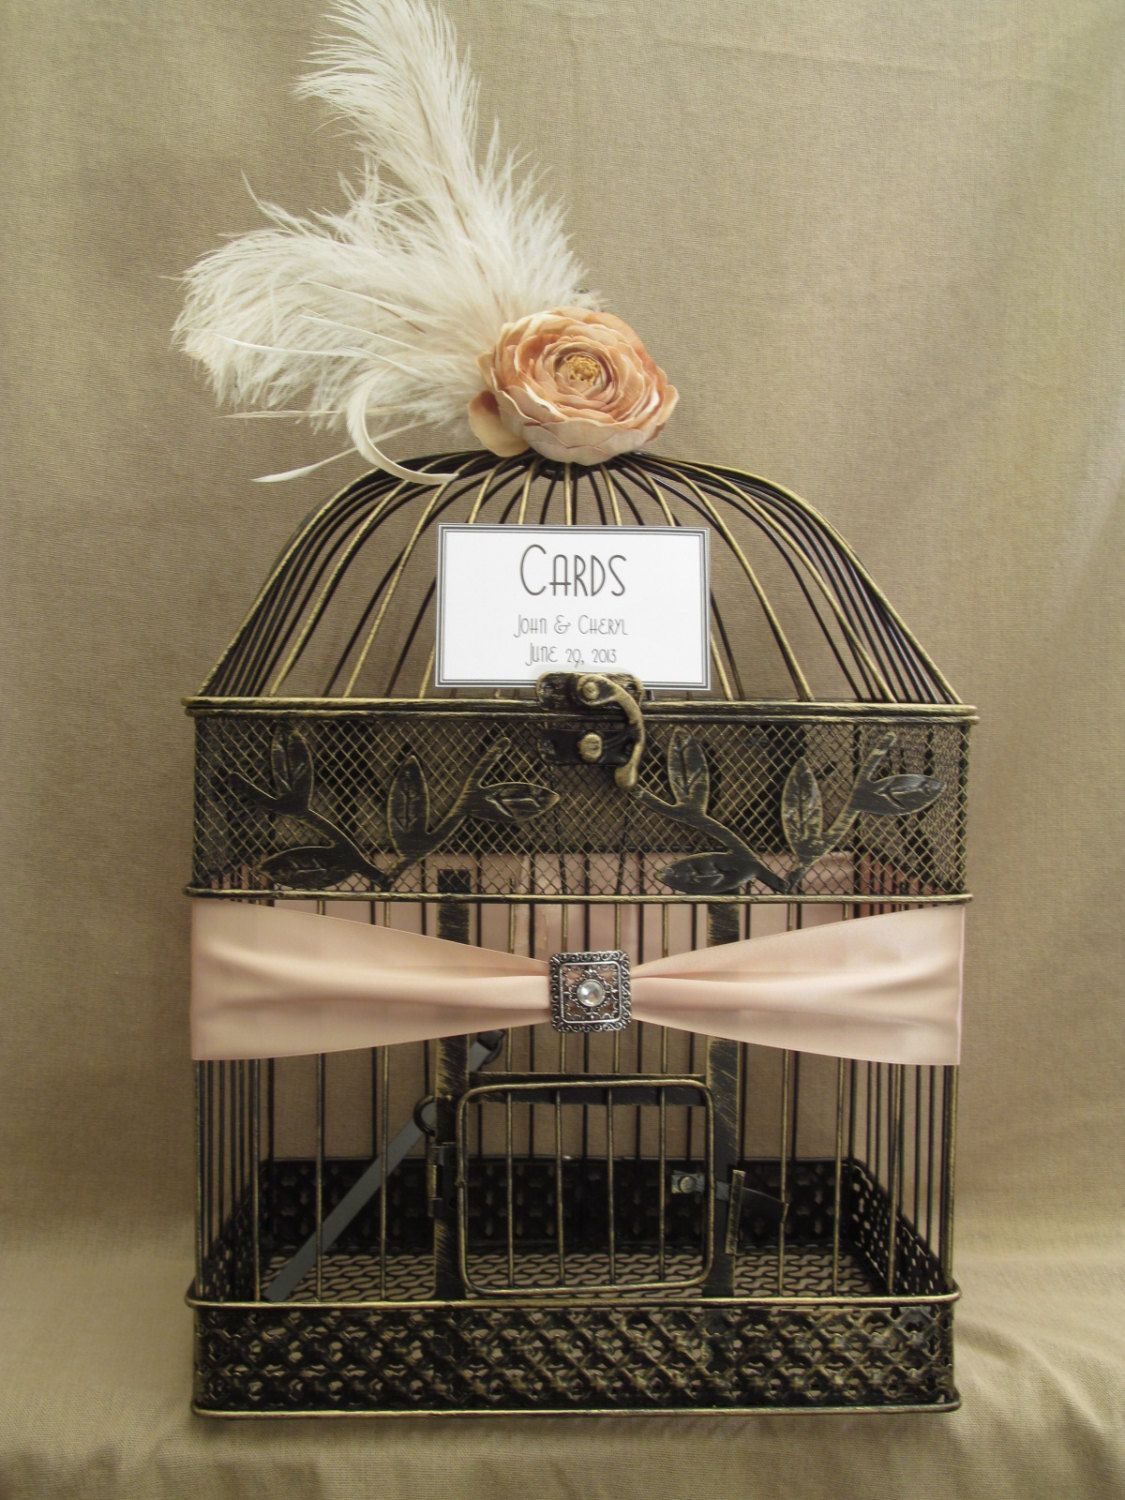 Art Deco Wedding Card Box Bird Cage Bling Ostrich Feathers